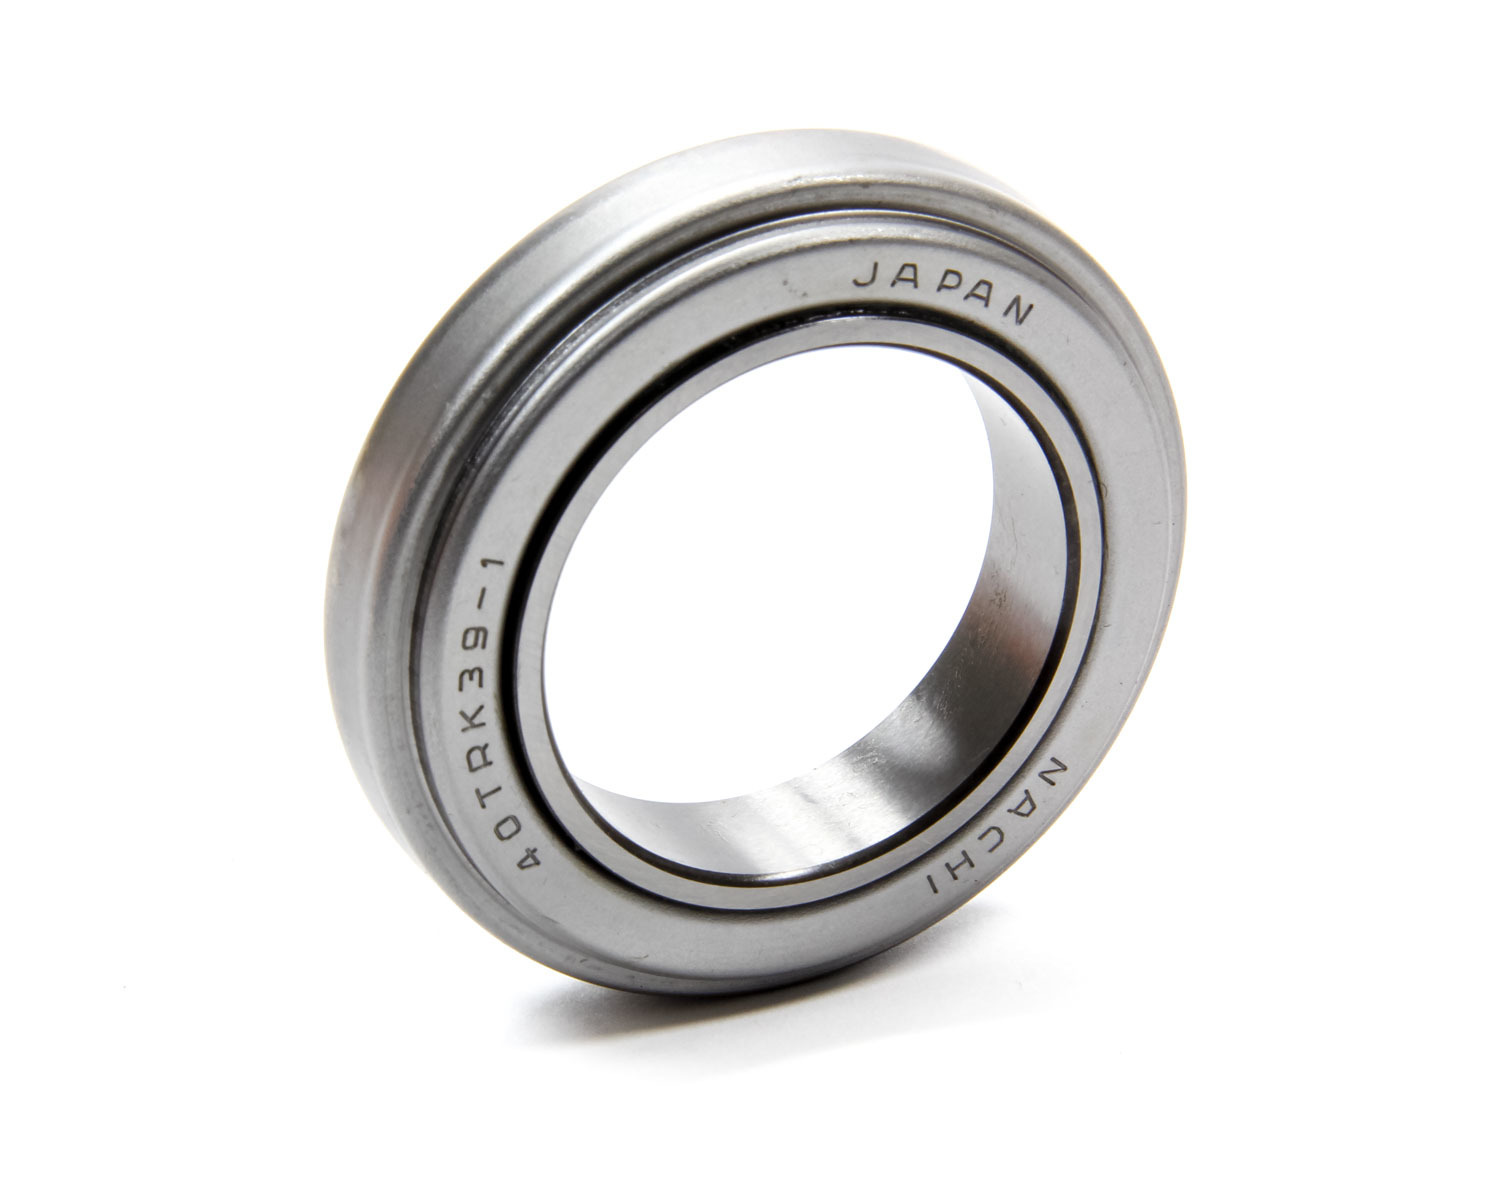 Quarter Master 106030 Throwout Bearing, Replacement Bearing Only, Quarter Master 710-Series Throwout Bearings, Each